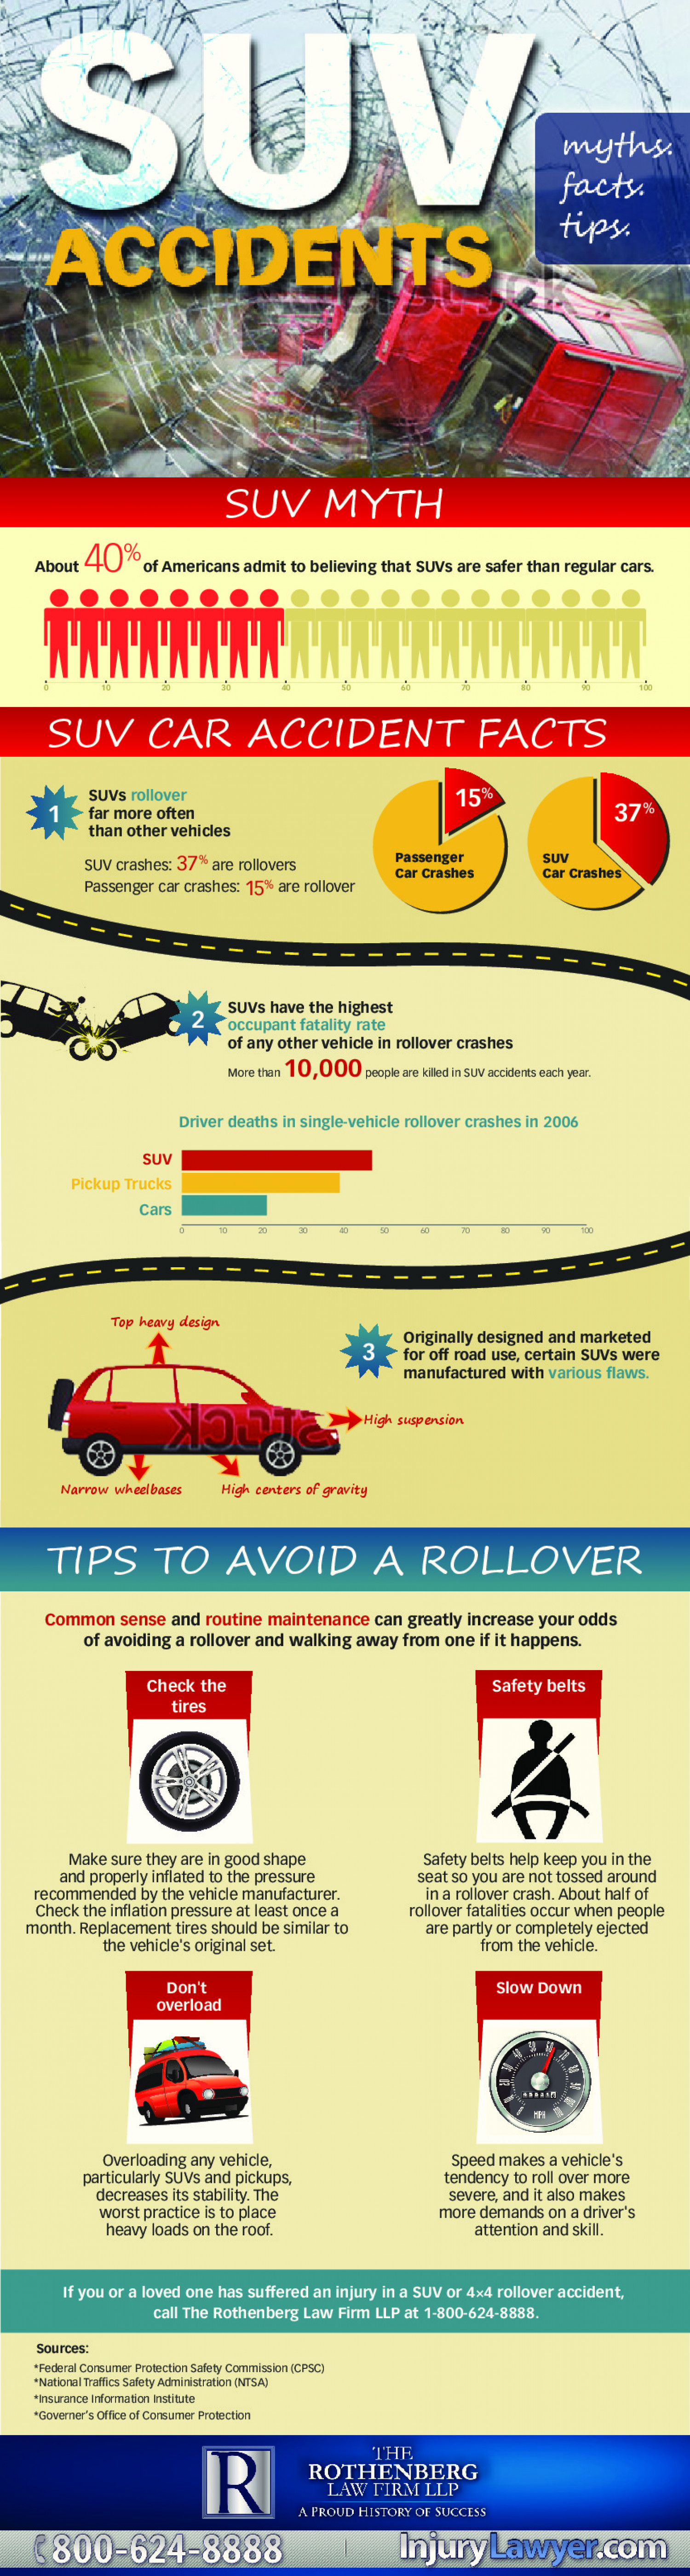 SUV Accidents Infographic